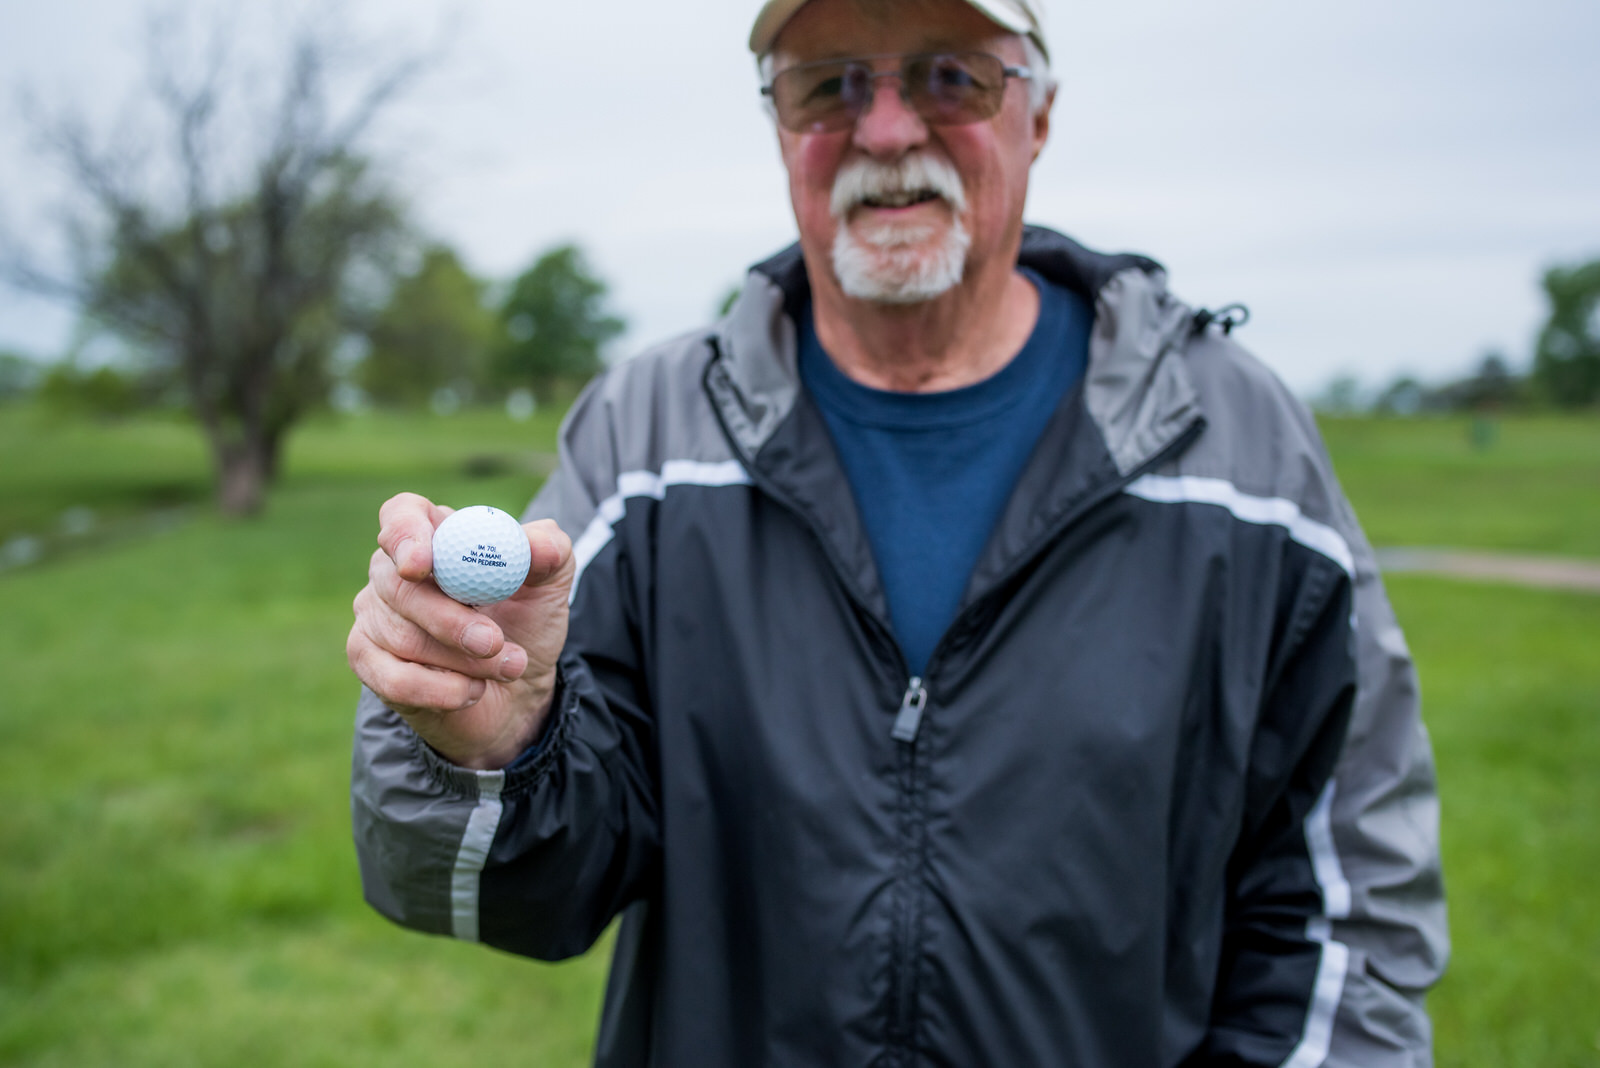 Don using one of his new personalized golf balls!